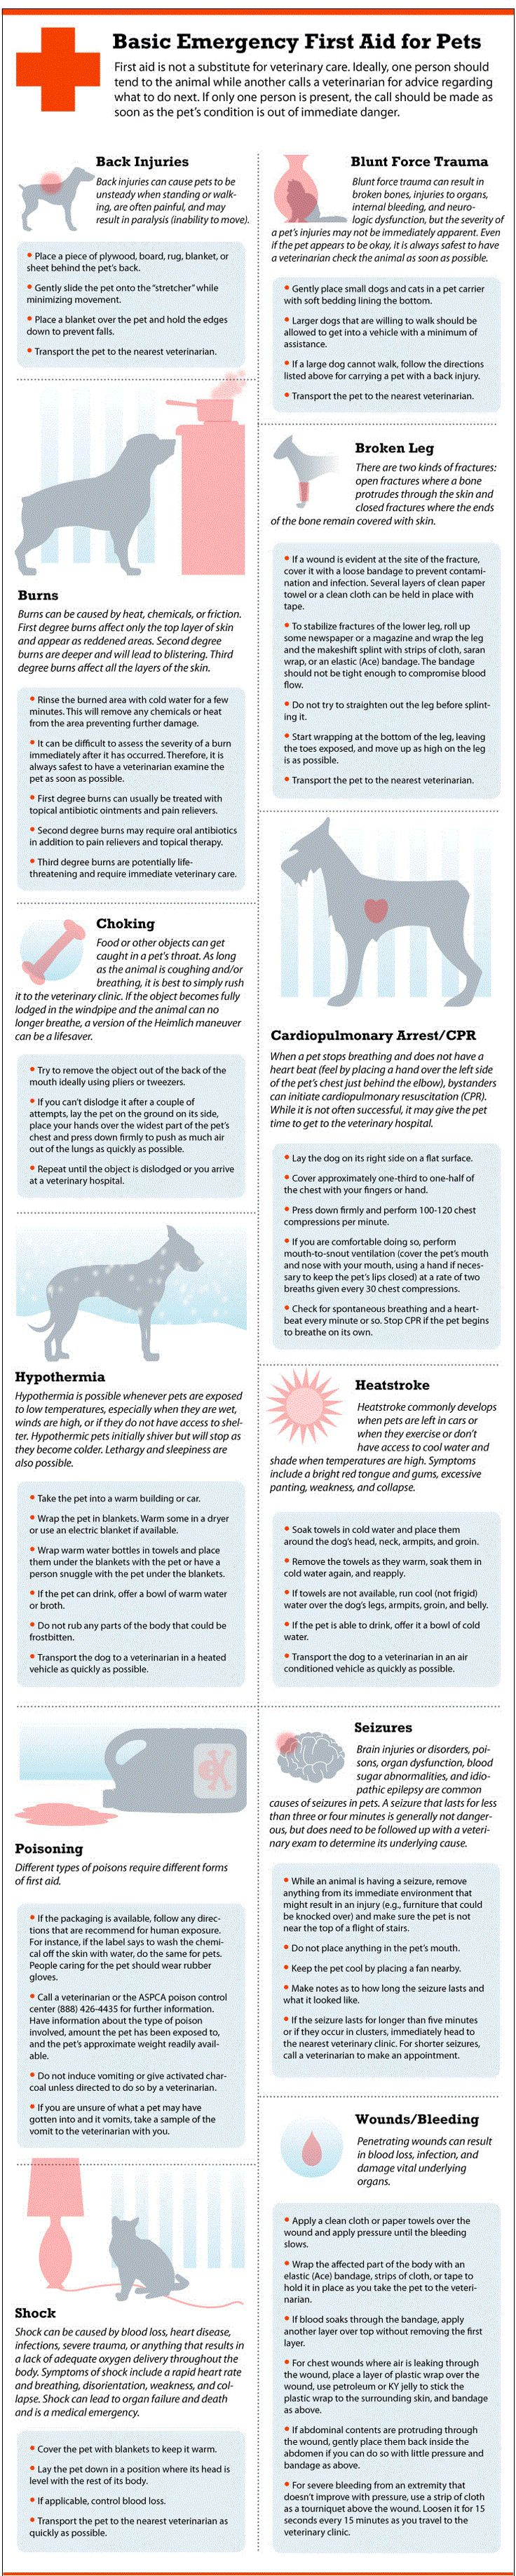 Basic emergency first aid for pets